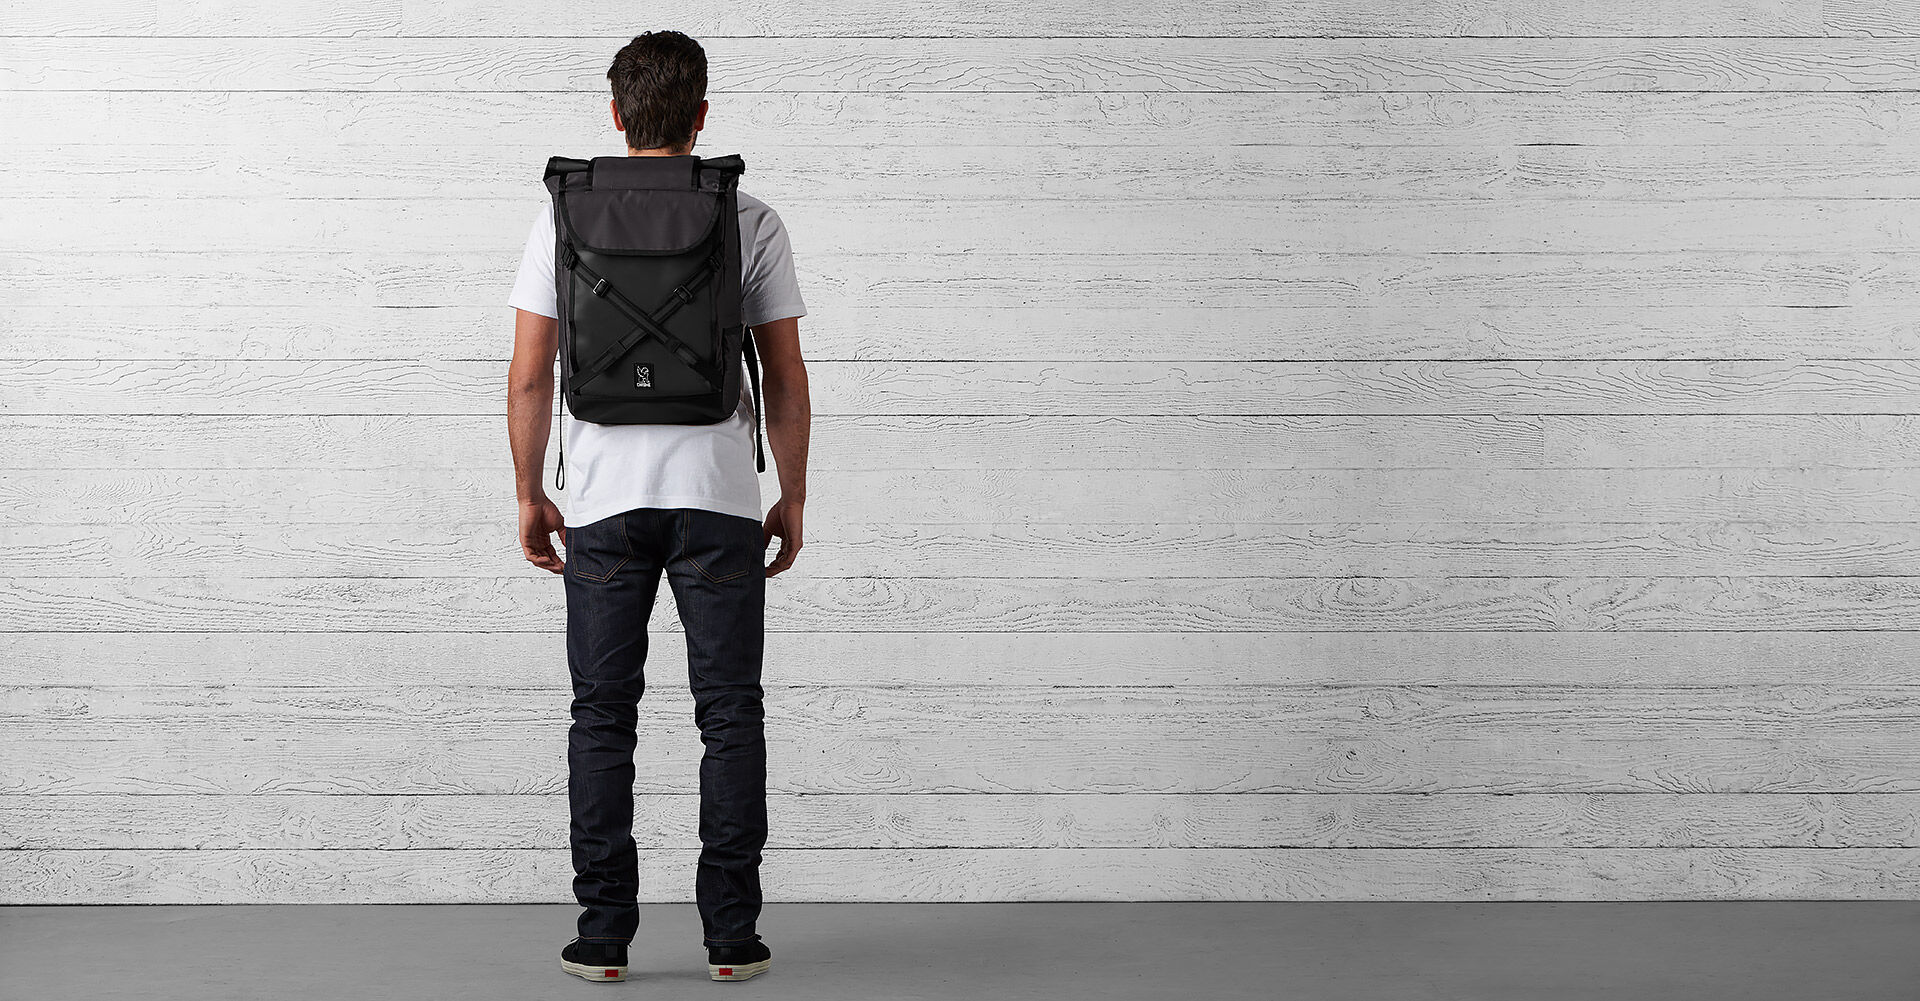 The Welterweight Bravo 2.0 Backpack in Charcoal / Black - wide view.